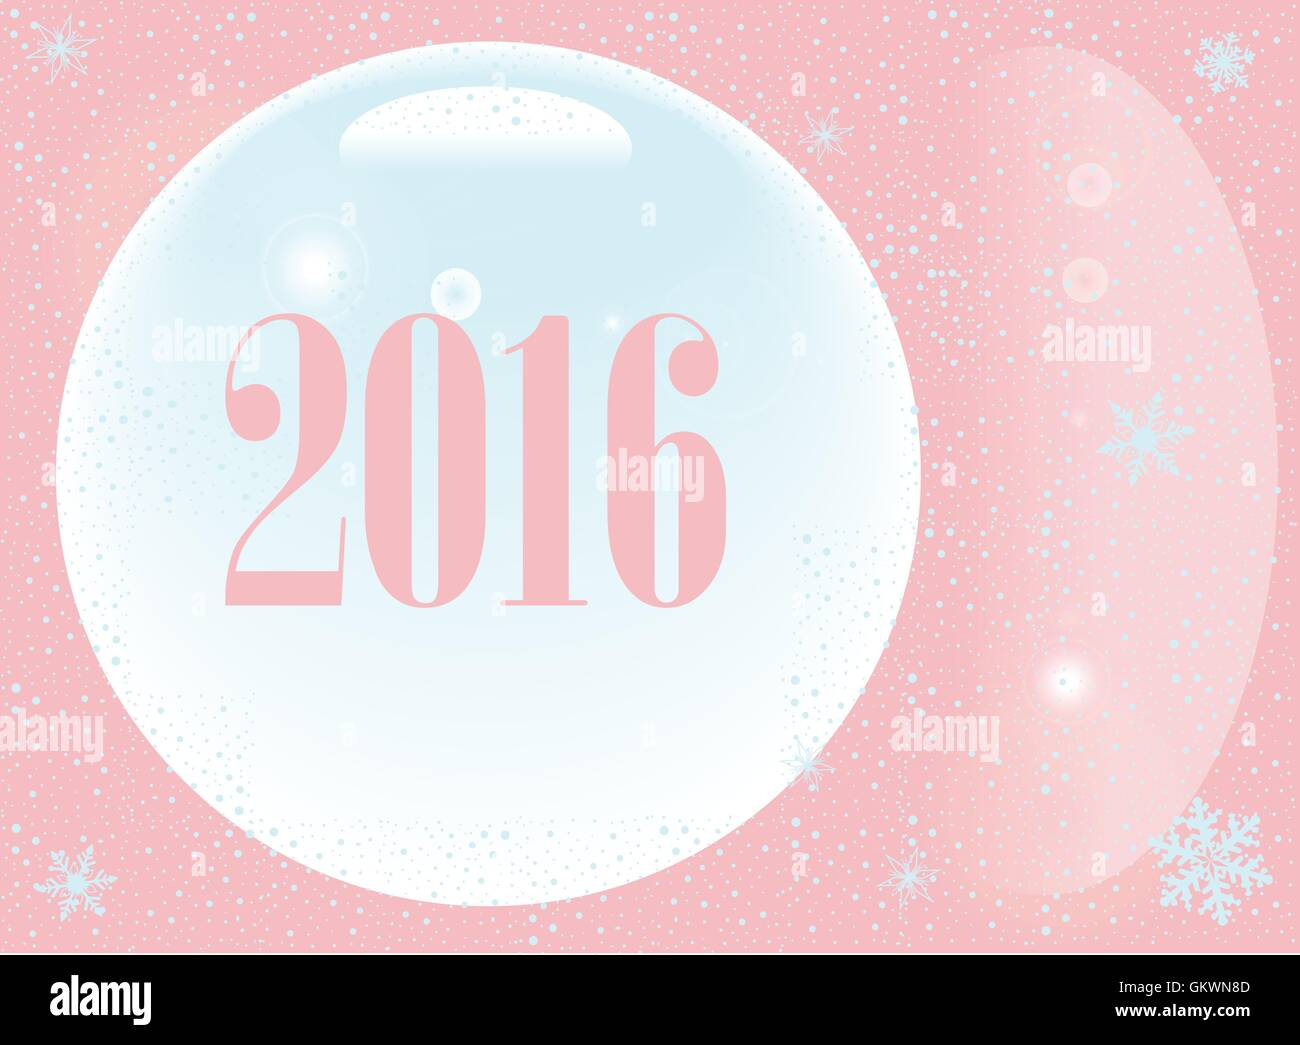 Pink New Year 2016 - Stock Image